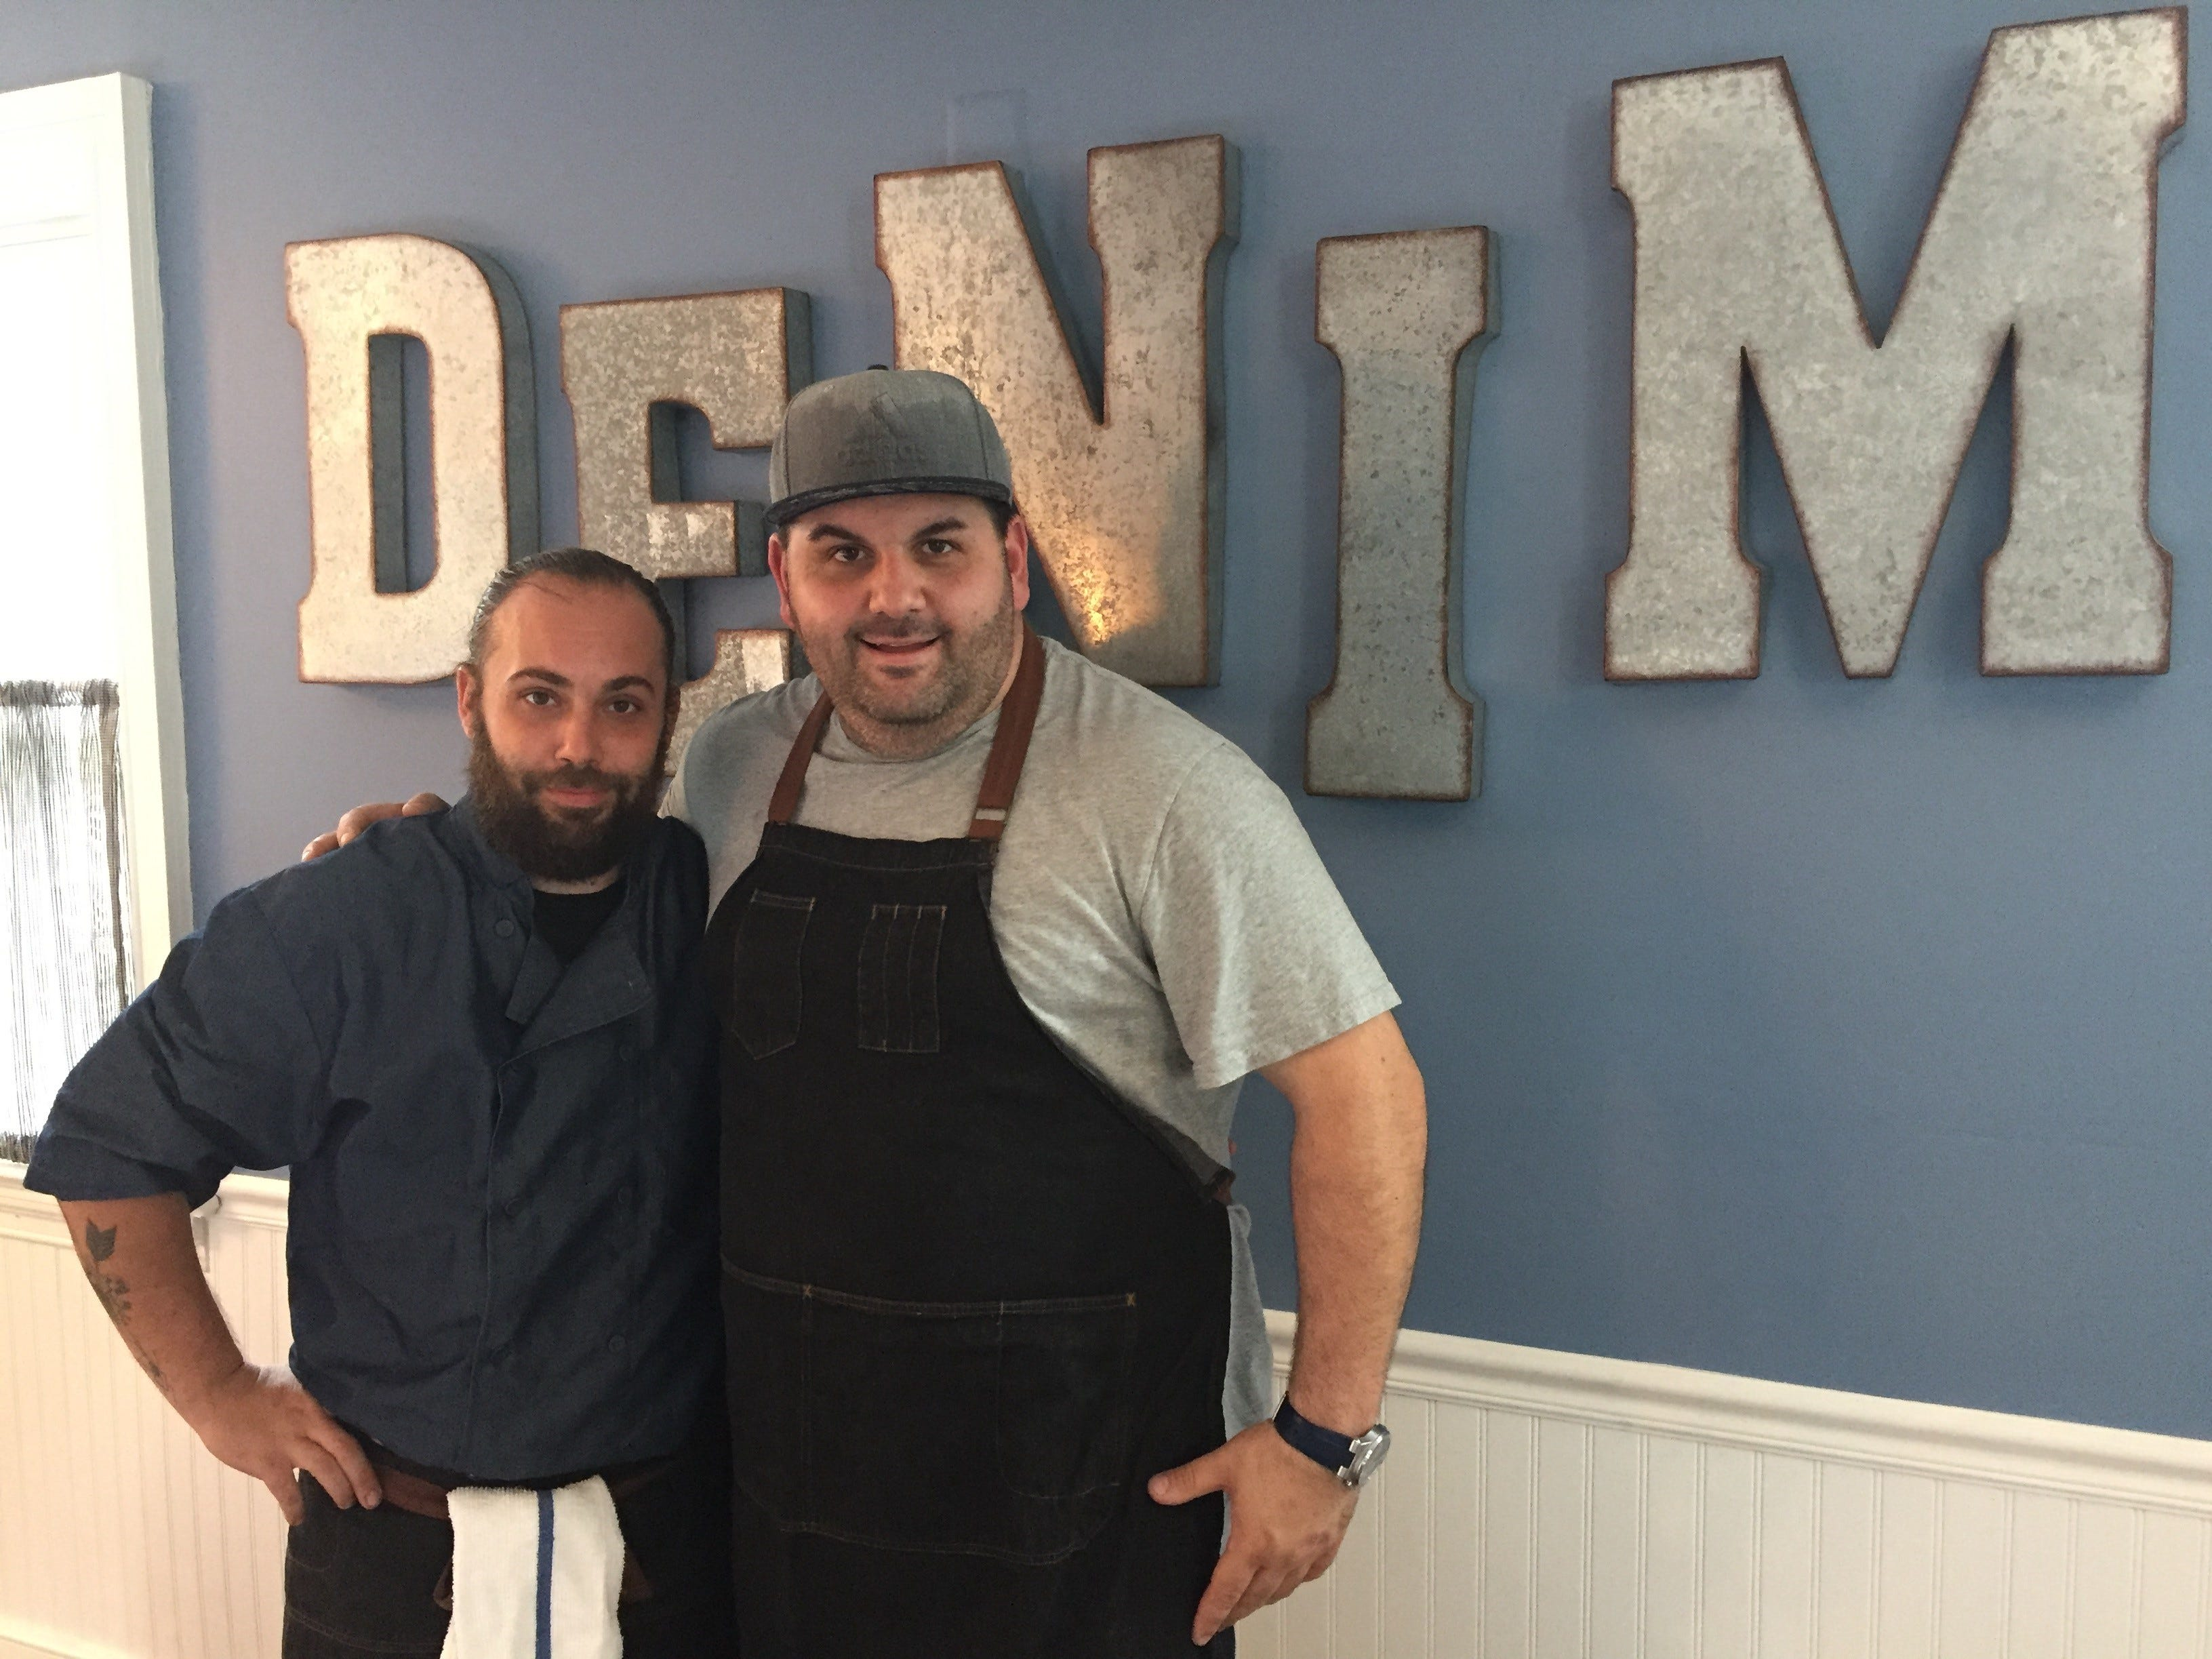 Chef-owner David Murray, left, and Chef de Cuisine Ed Stein, are nearly ready to open the doors on Denim American Bistro. Both chefs are familiar with the restaurant kitchen, having worked at The Farmhouse, which closed earlier this year.